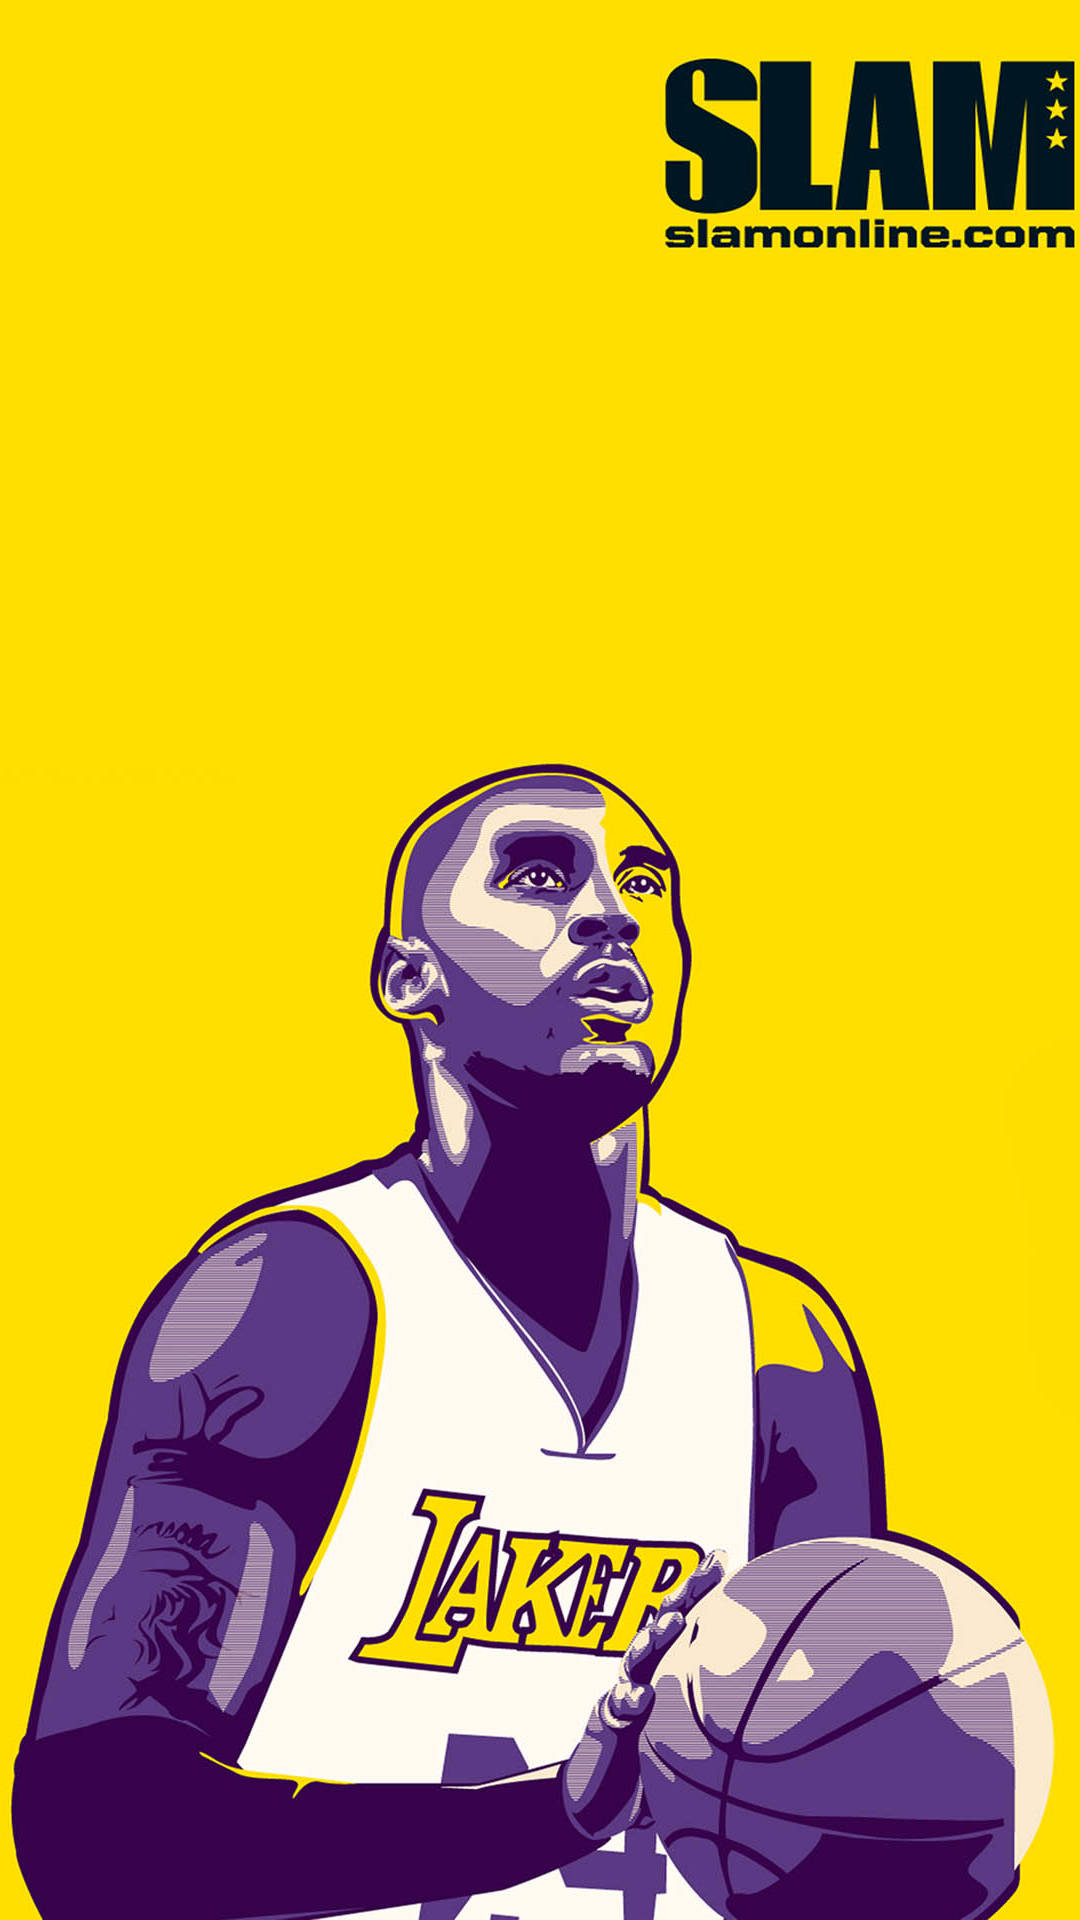 Los Angeles Lakers Wallpaper Hd 30 Kobe Bryant Wallpapers Hd For Iphone 2016 Apple Lives